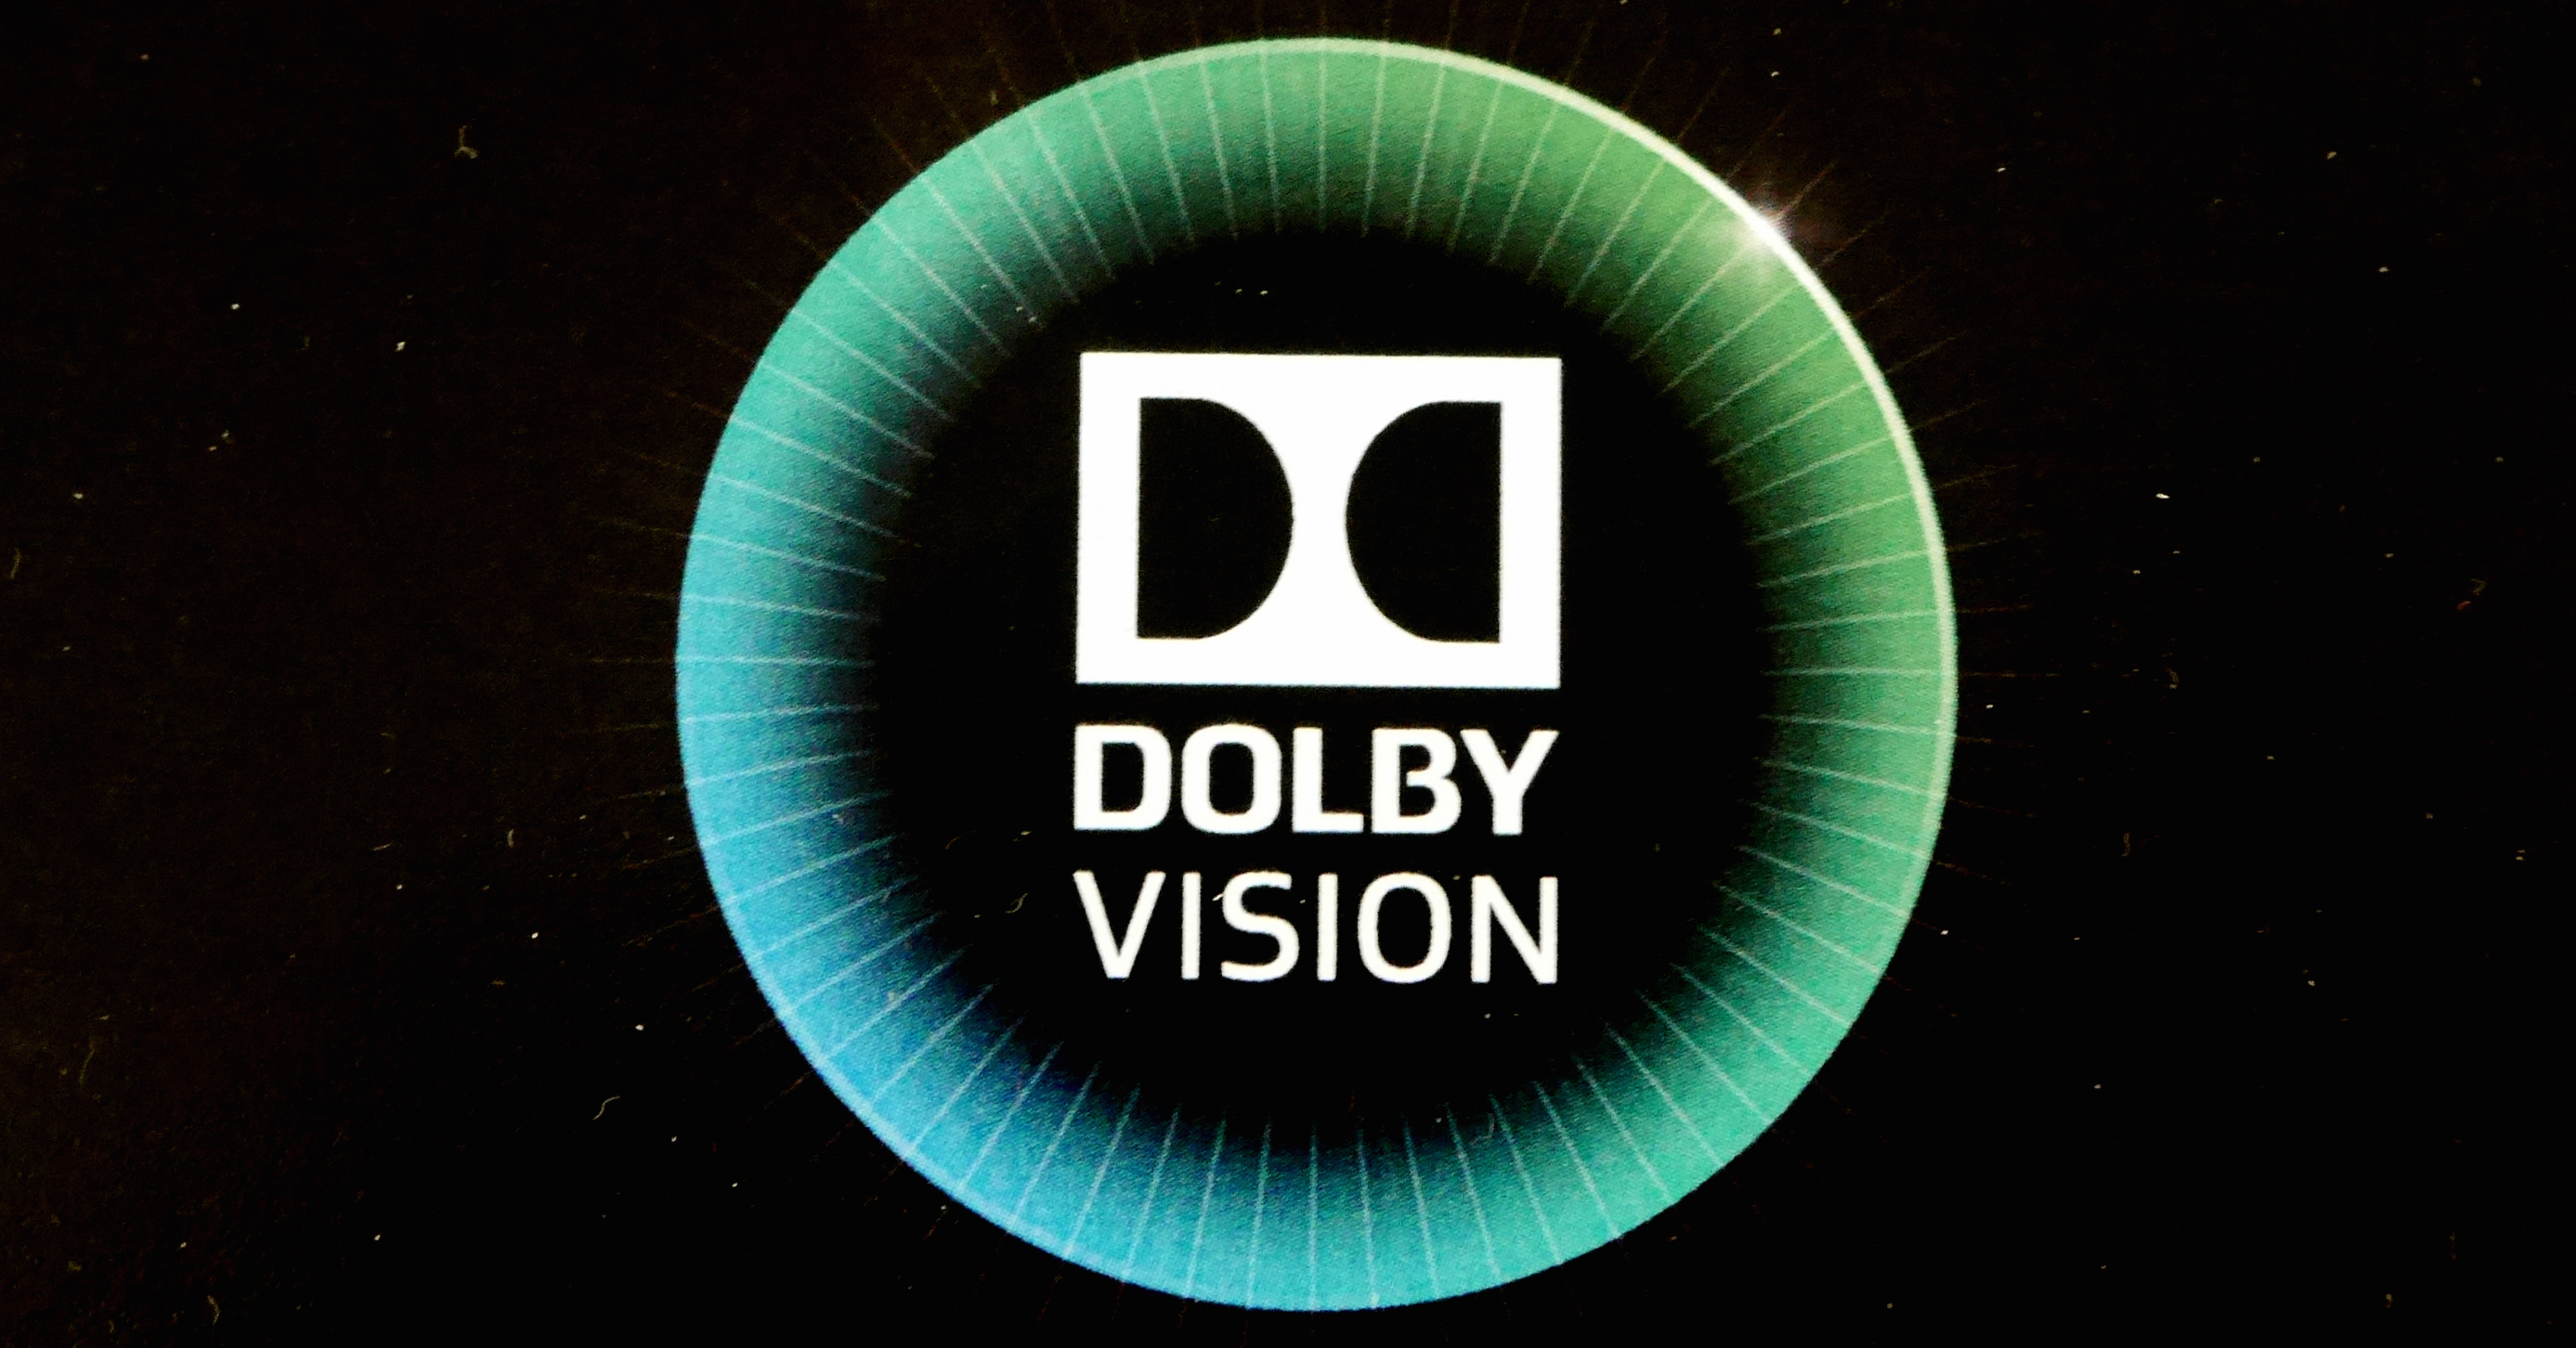 Dolby Vision: the new HDR format for home TVs